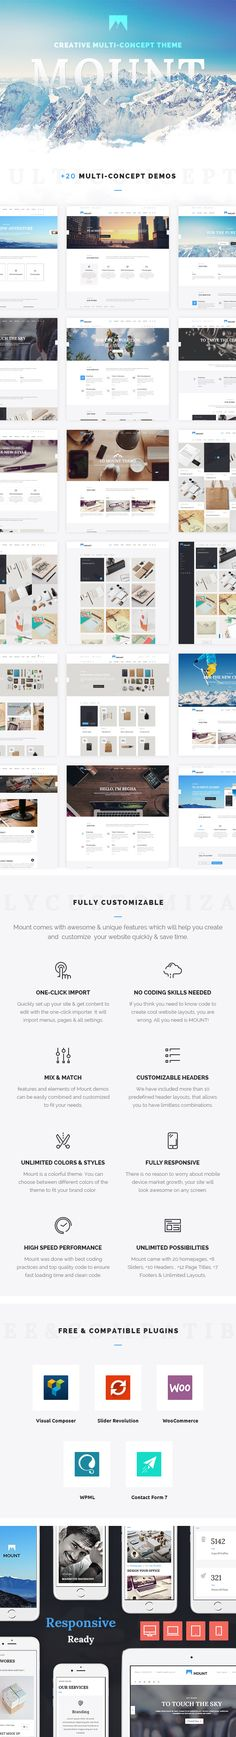 Mount Business – Creative Multi-Concept WordPress Theme #small business #visual composer • Download ➝ https://themeforest.net/item/mount-business-creative-multiconcept-wordpress-theme/15700895?ref=pxcr